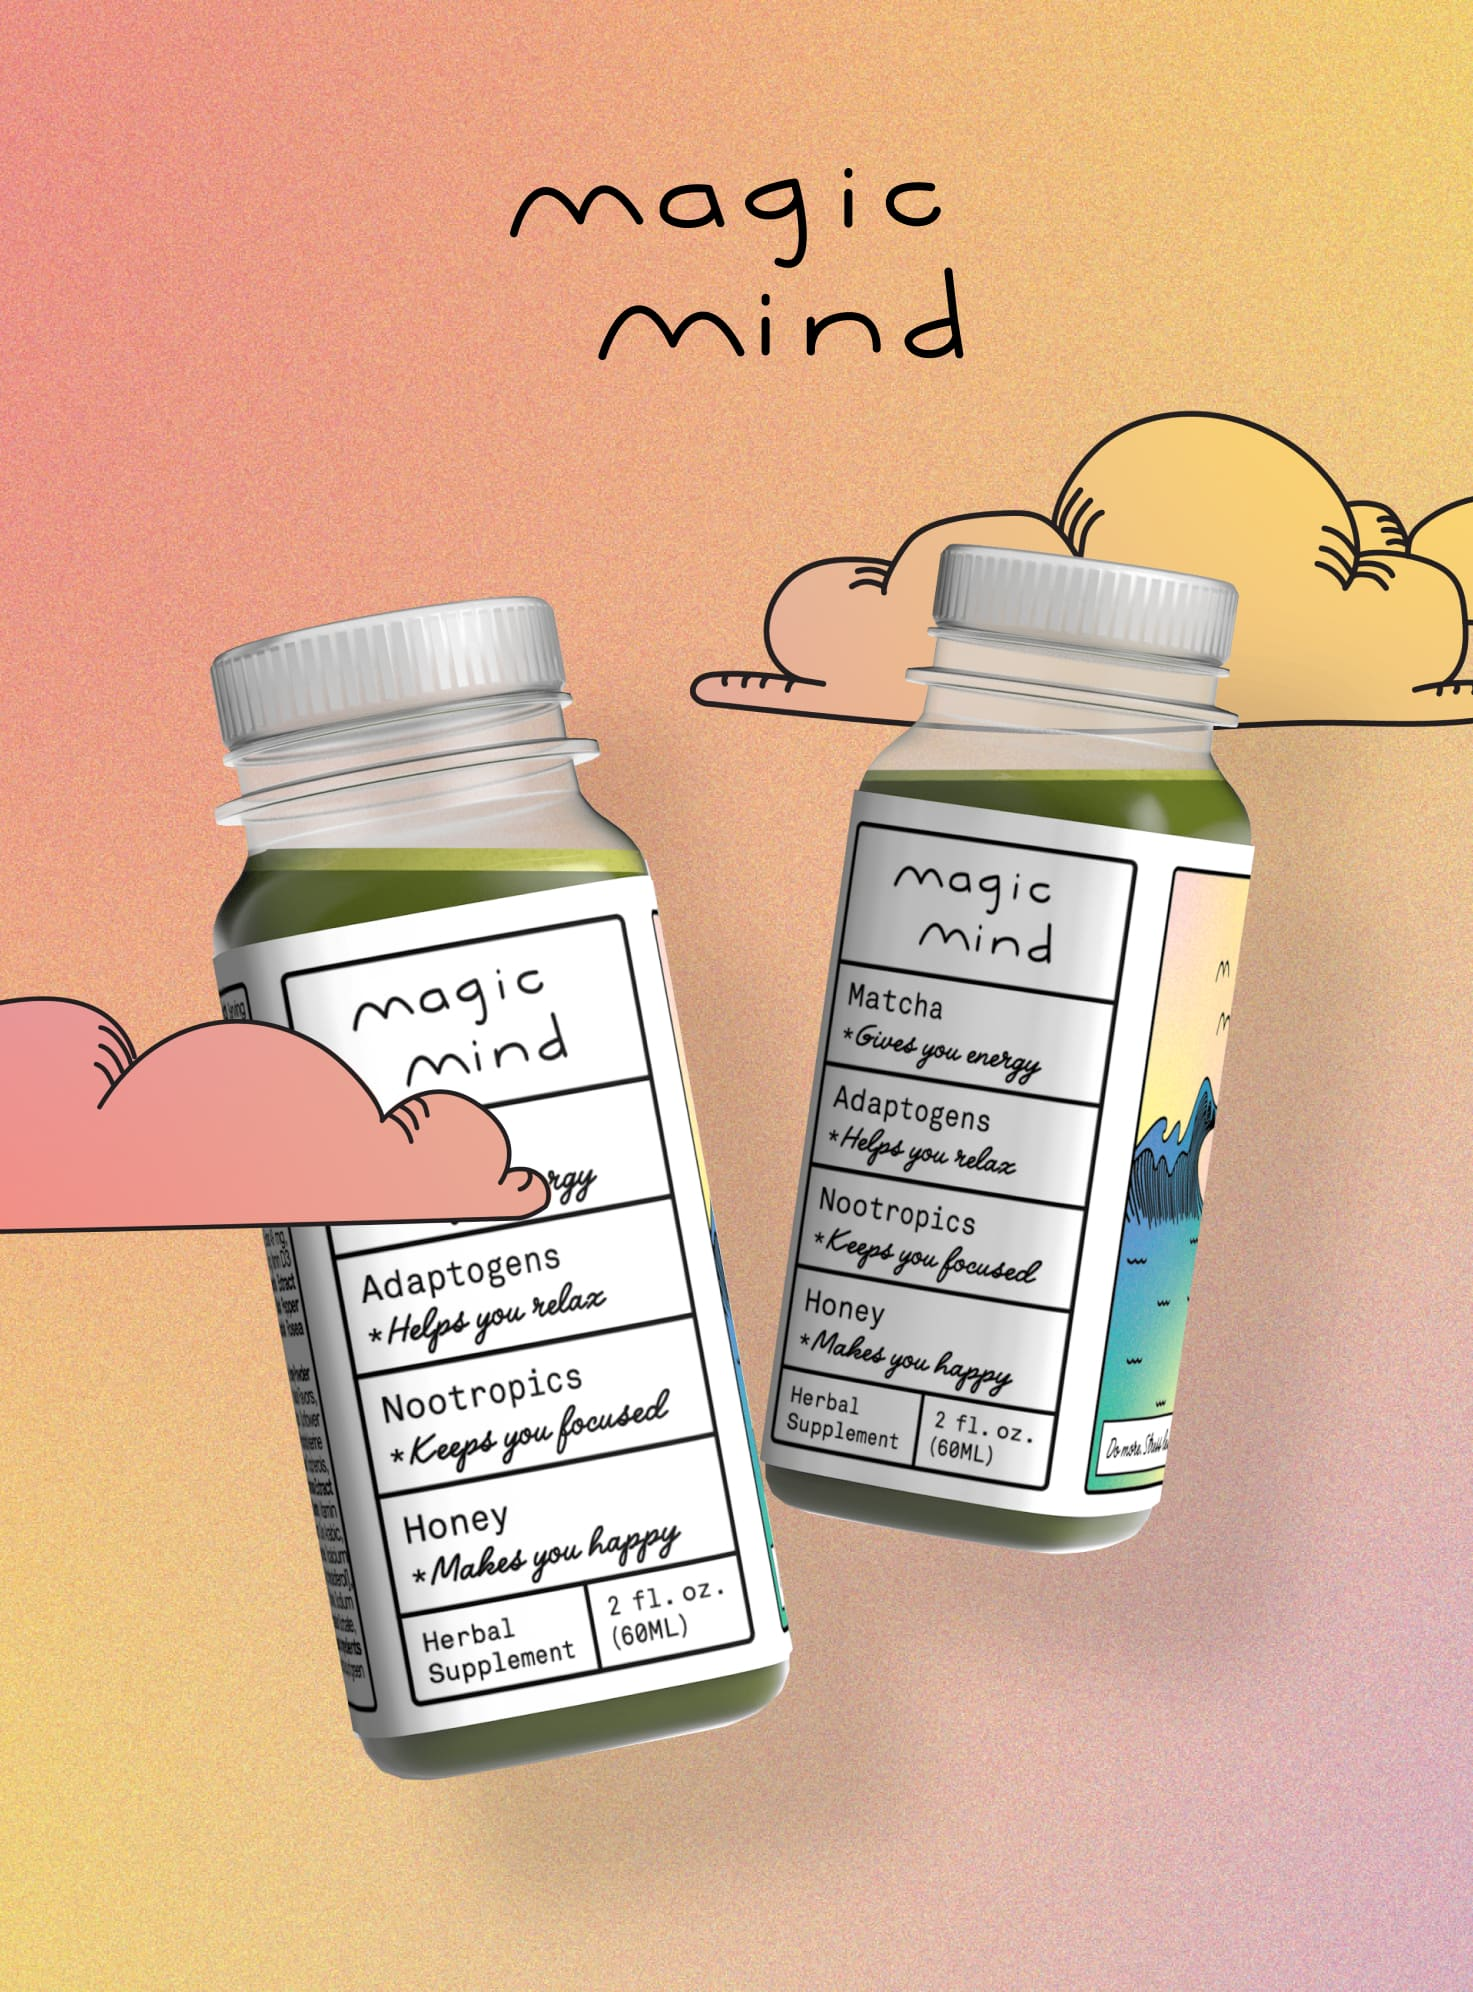 A Product shot of two magic mind bottles.